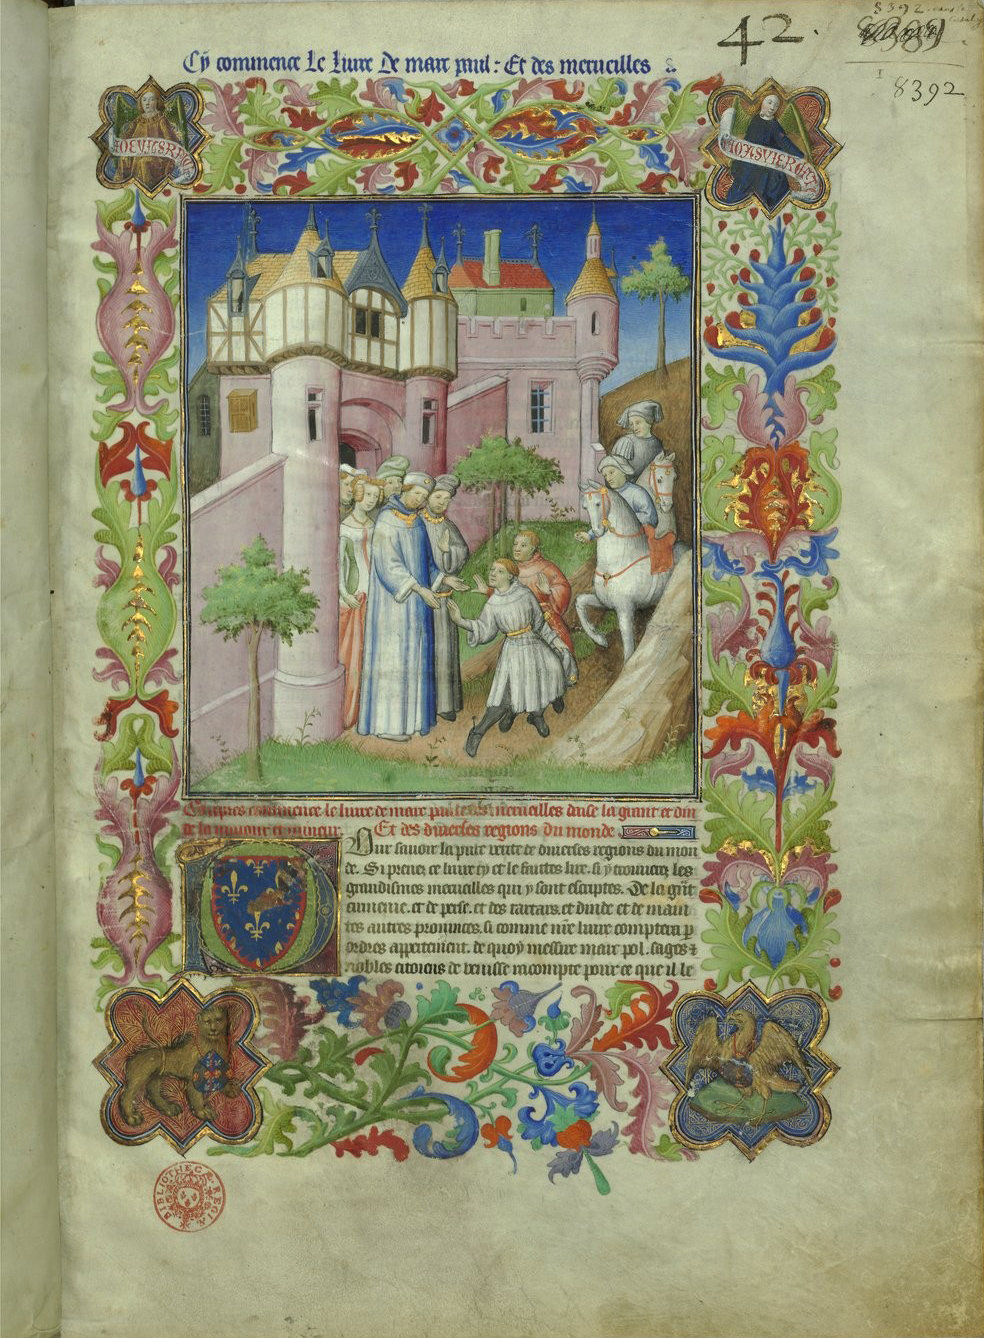 Anthology of travel literature and texts on the Orient f9, Paris, 15th century (1410-1412 ; c. 1470 for the miniature on f. 42v), Bibliothèque nationale de France, Manuscrits, Français 2810 Parchment, 299 ff., 420 x 298 mm., In Copyright